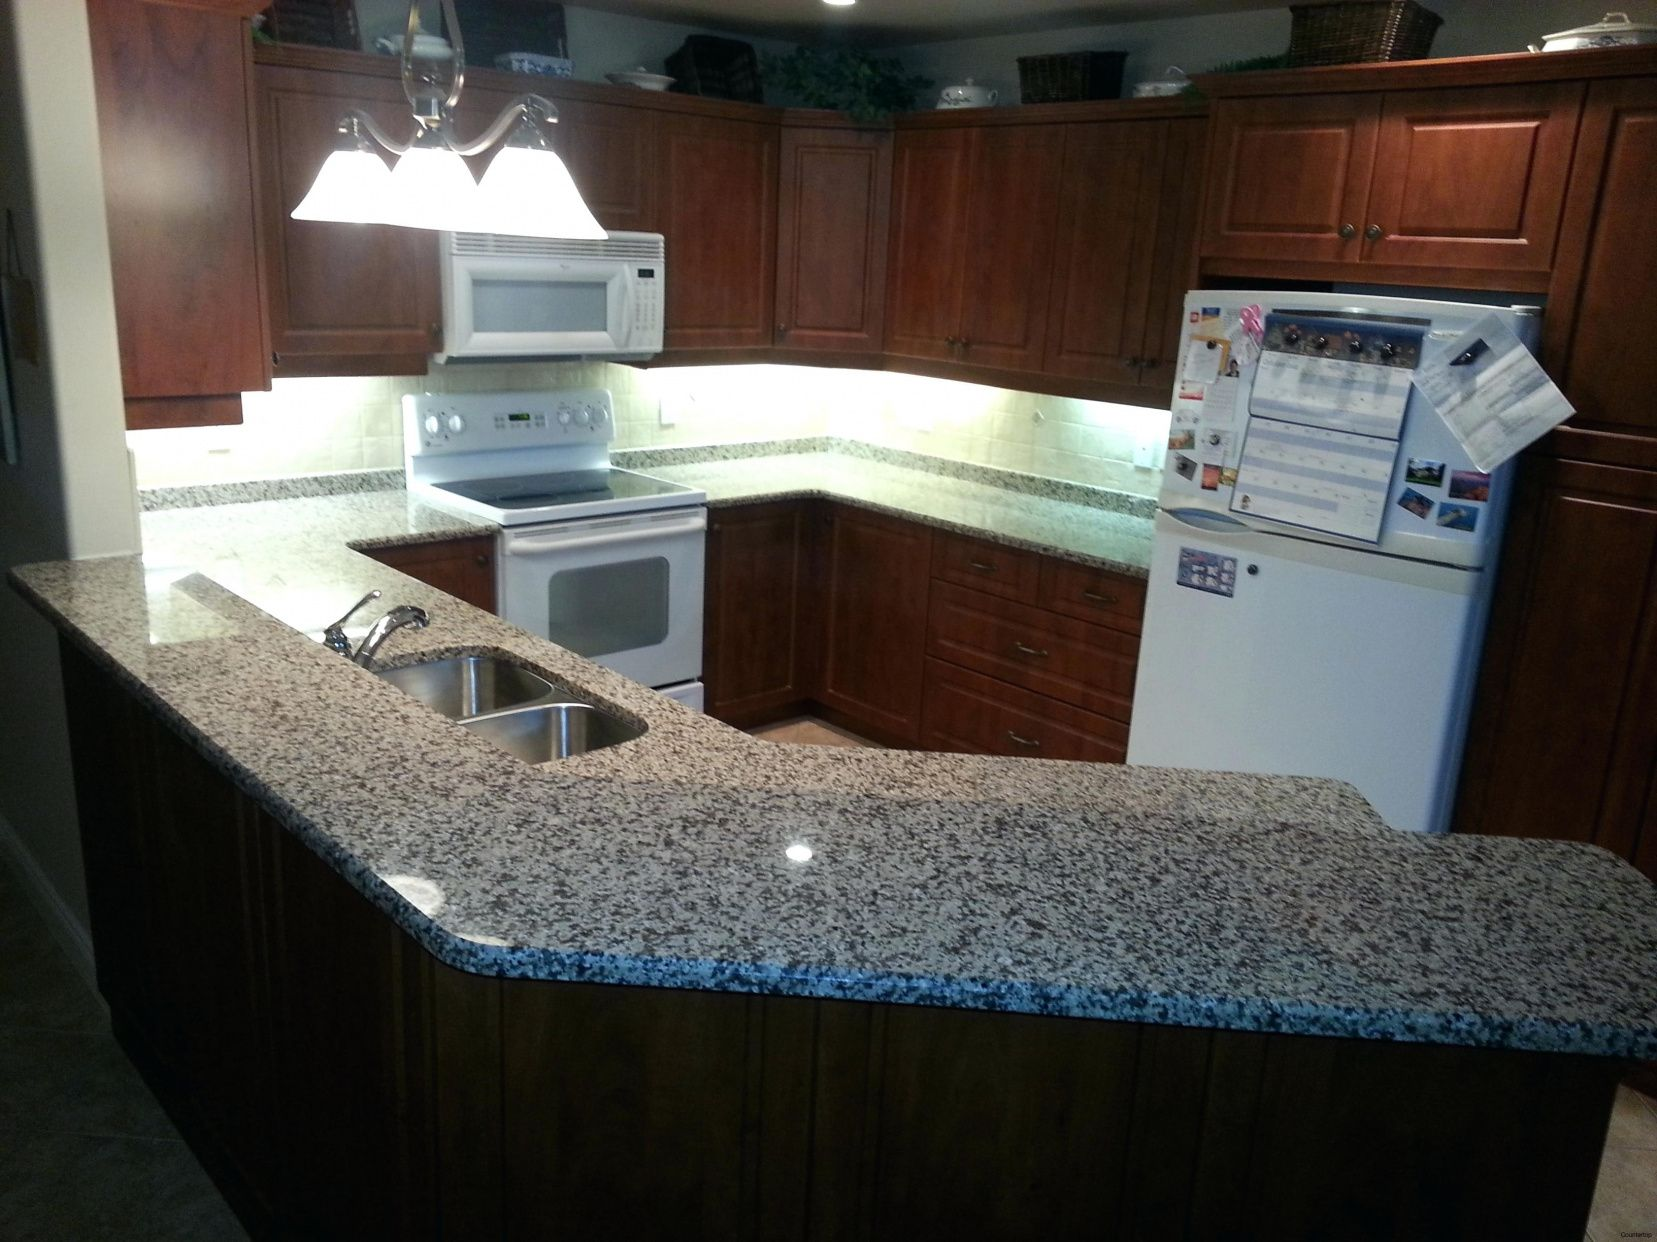 pin by erlangfahresi on granite countertops colors | pinterest